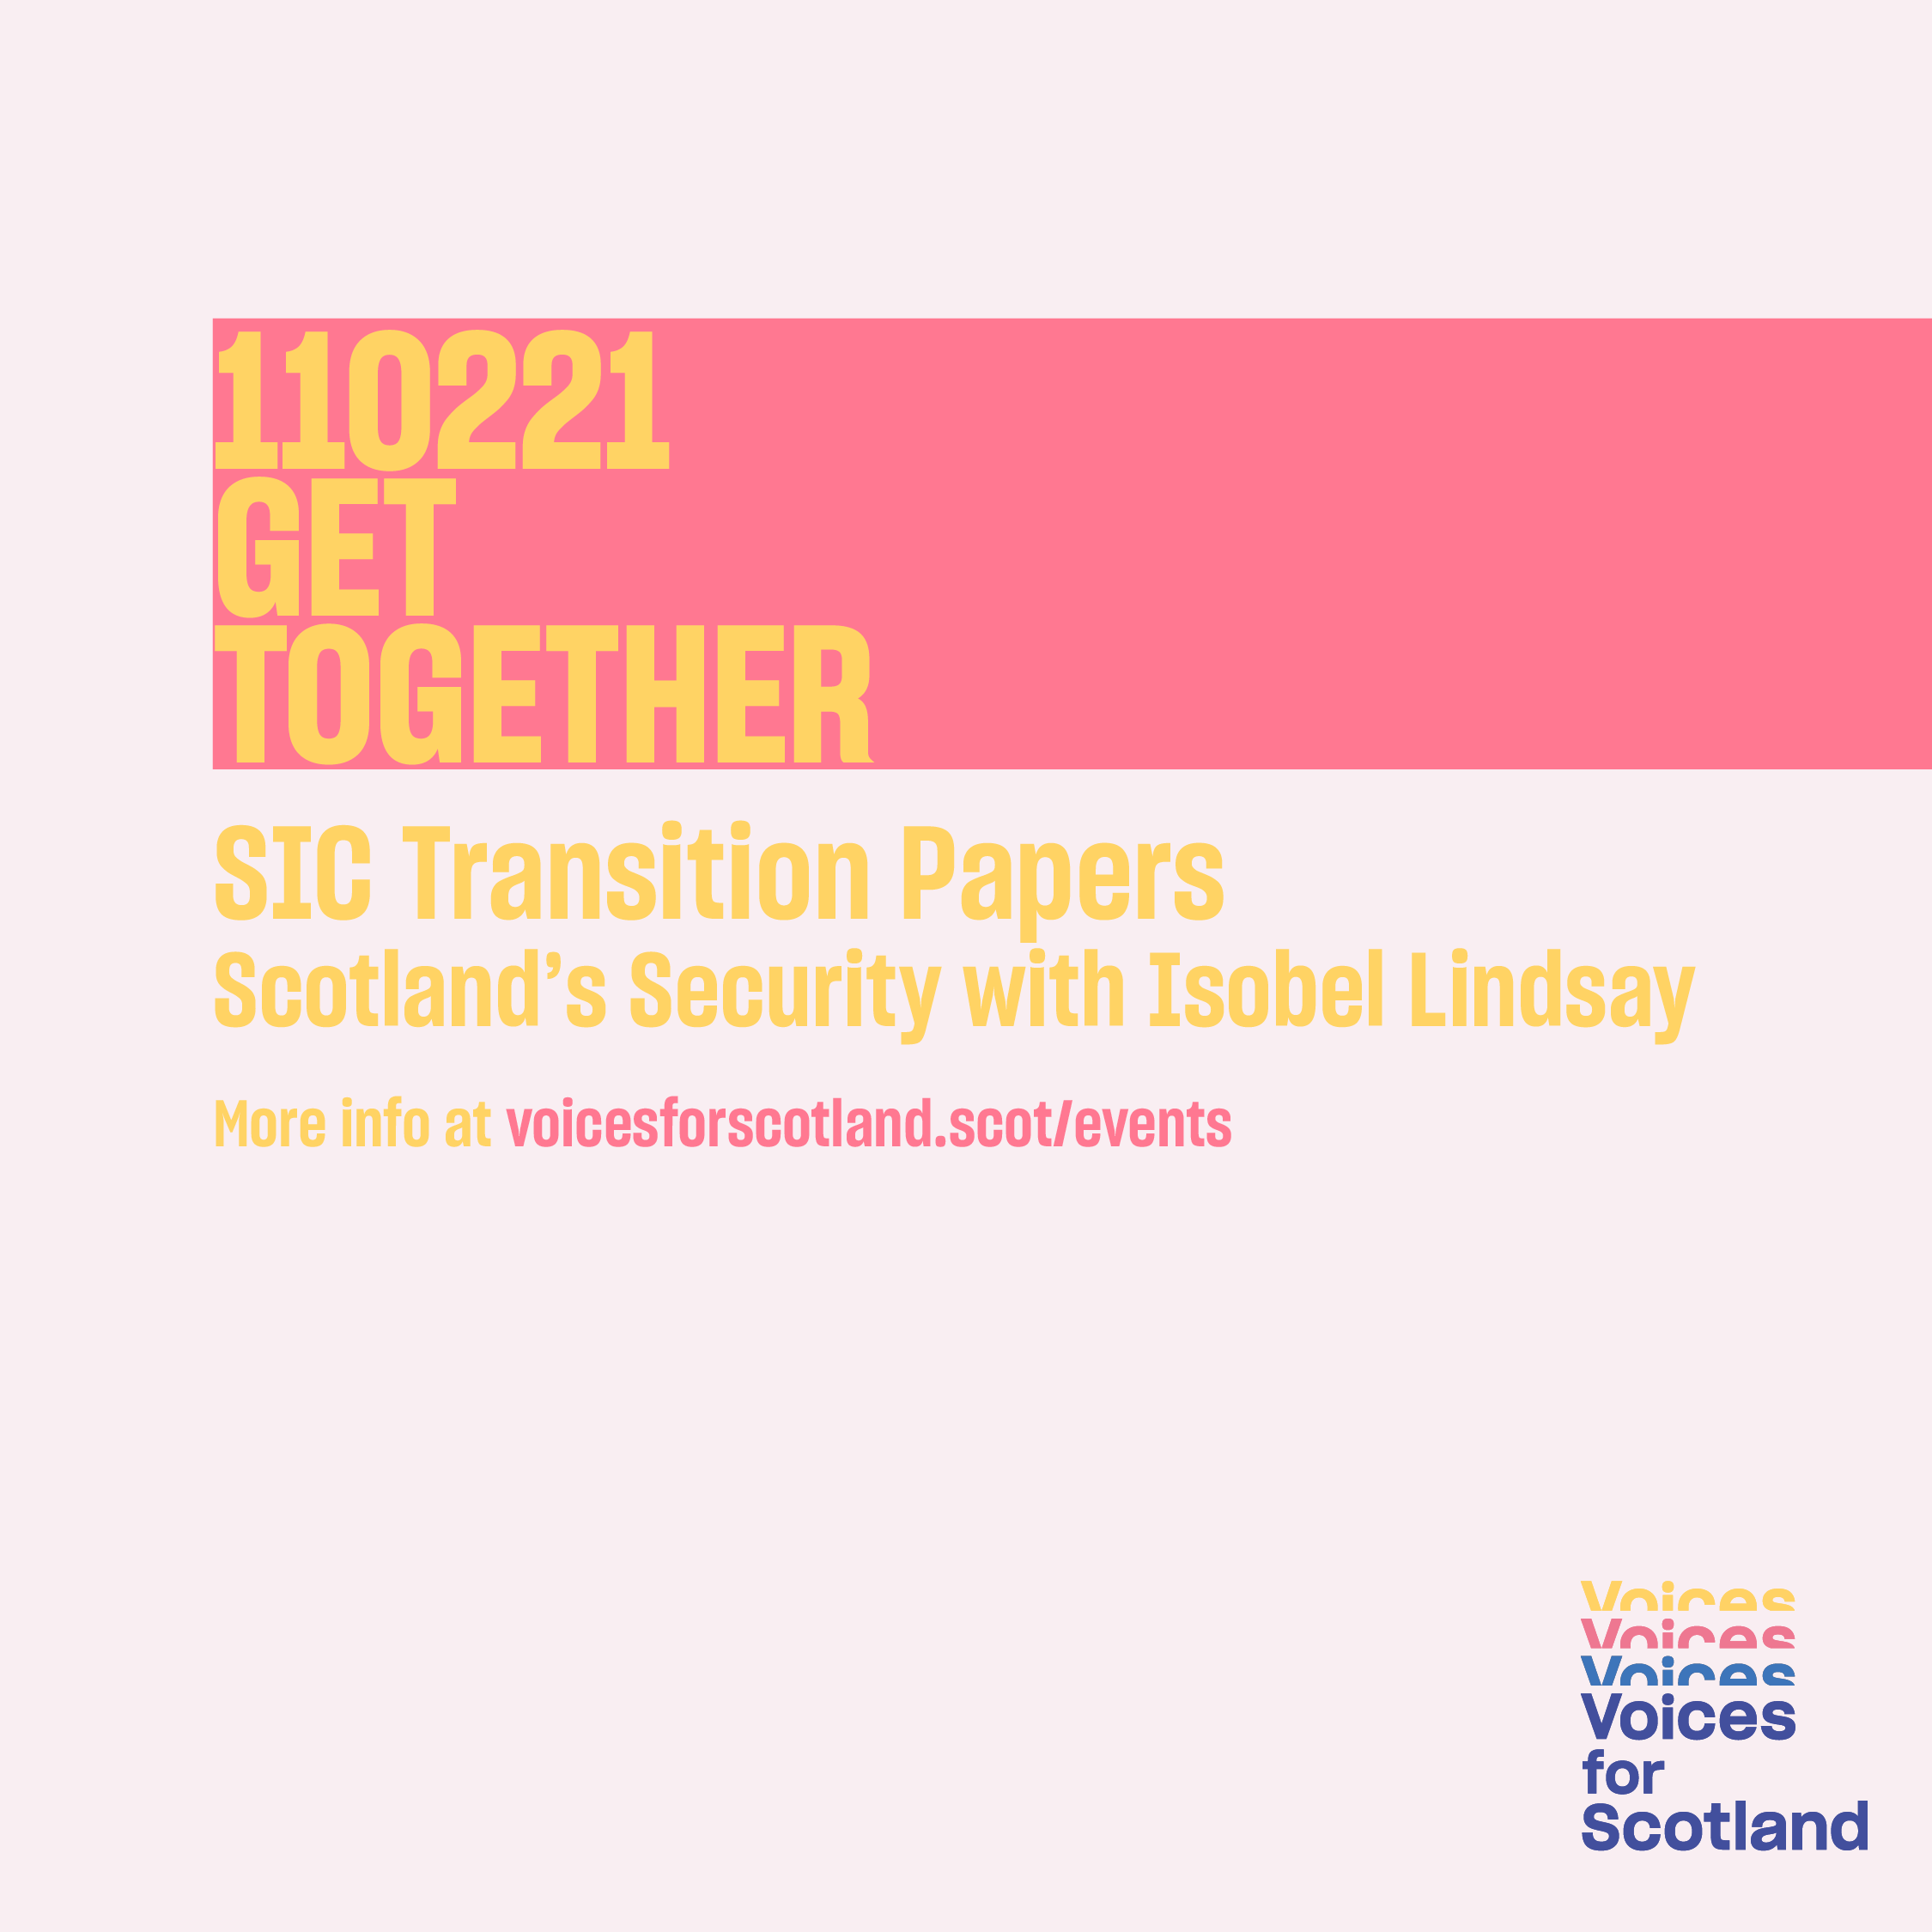 Image promoting Voices for Scotland's event on 11 February